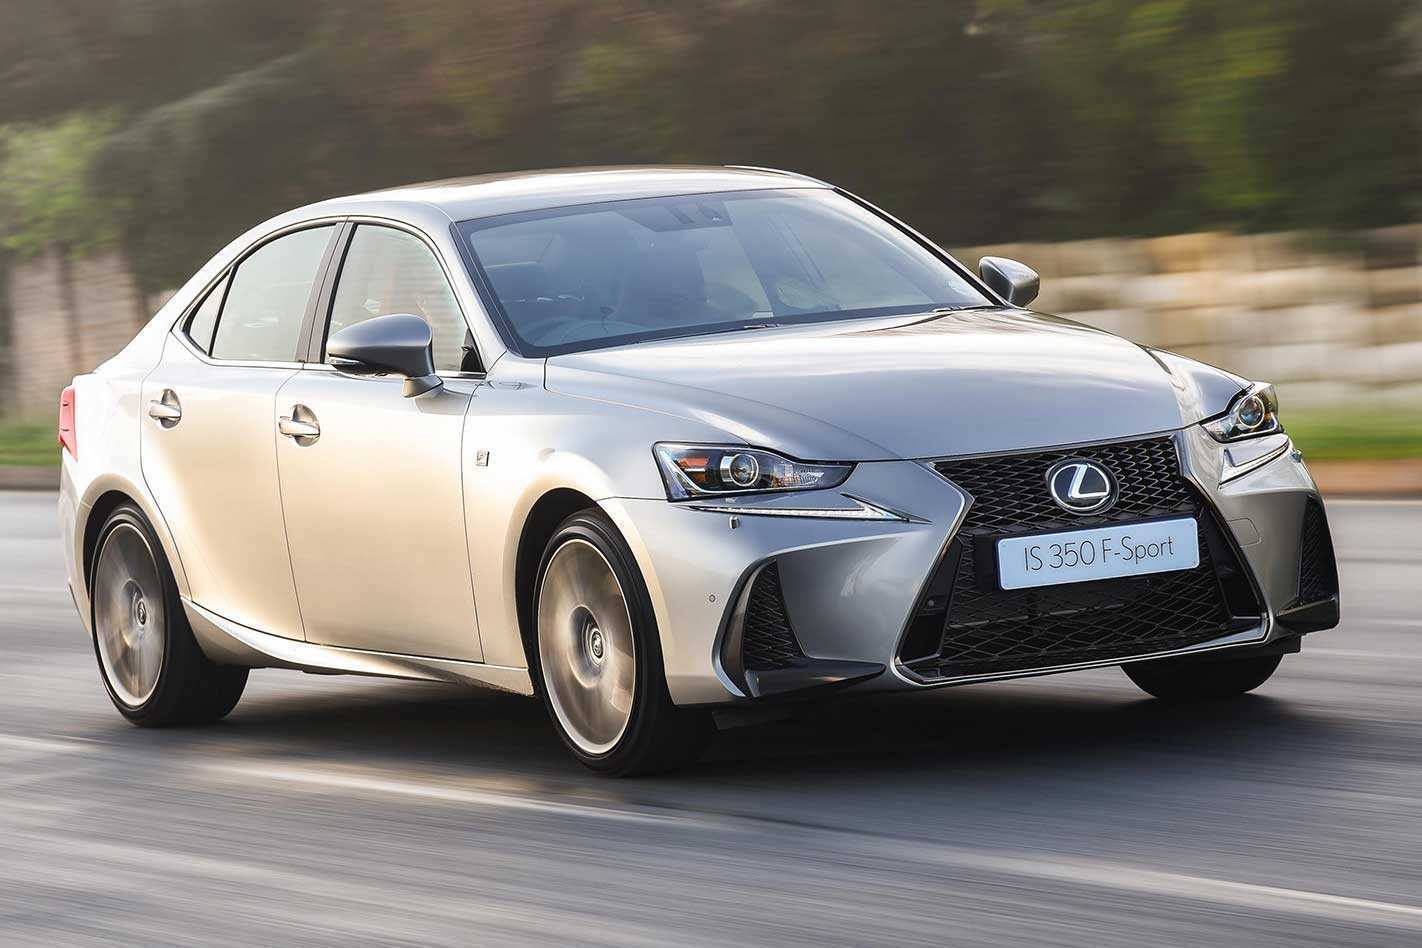 63 All New 2019 Lexus IS350 Spesification